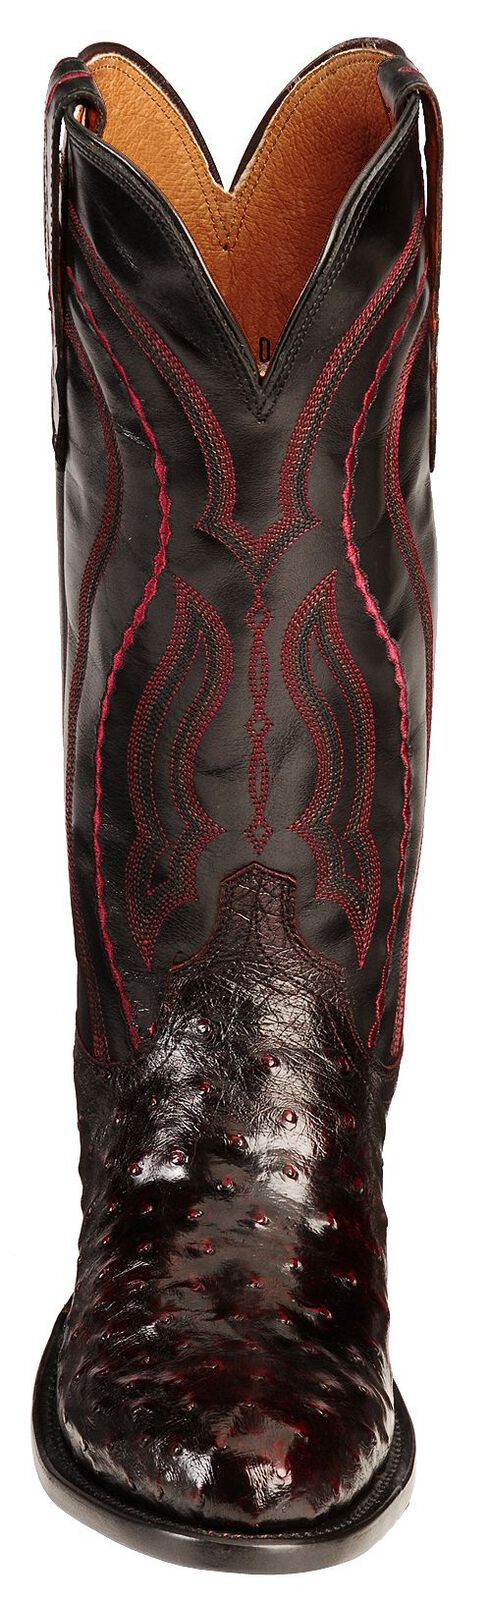 Lucchese Handcrafted 1883 Full Quill Ostrich Drosseto Boots - Round Toe, Black Cherry, hi-res